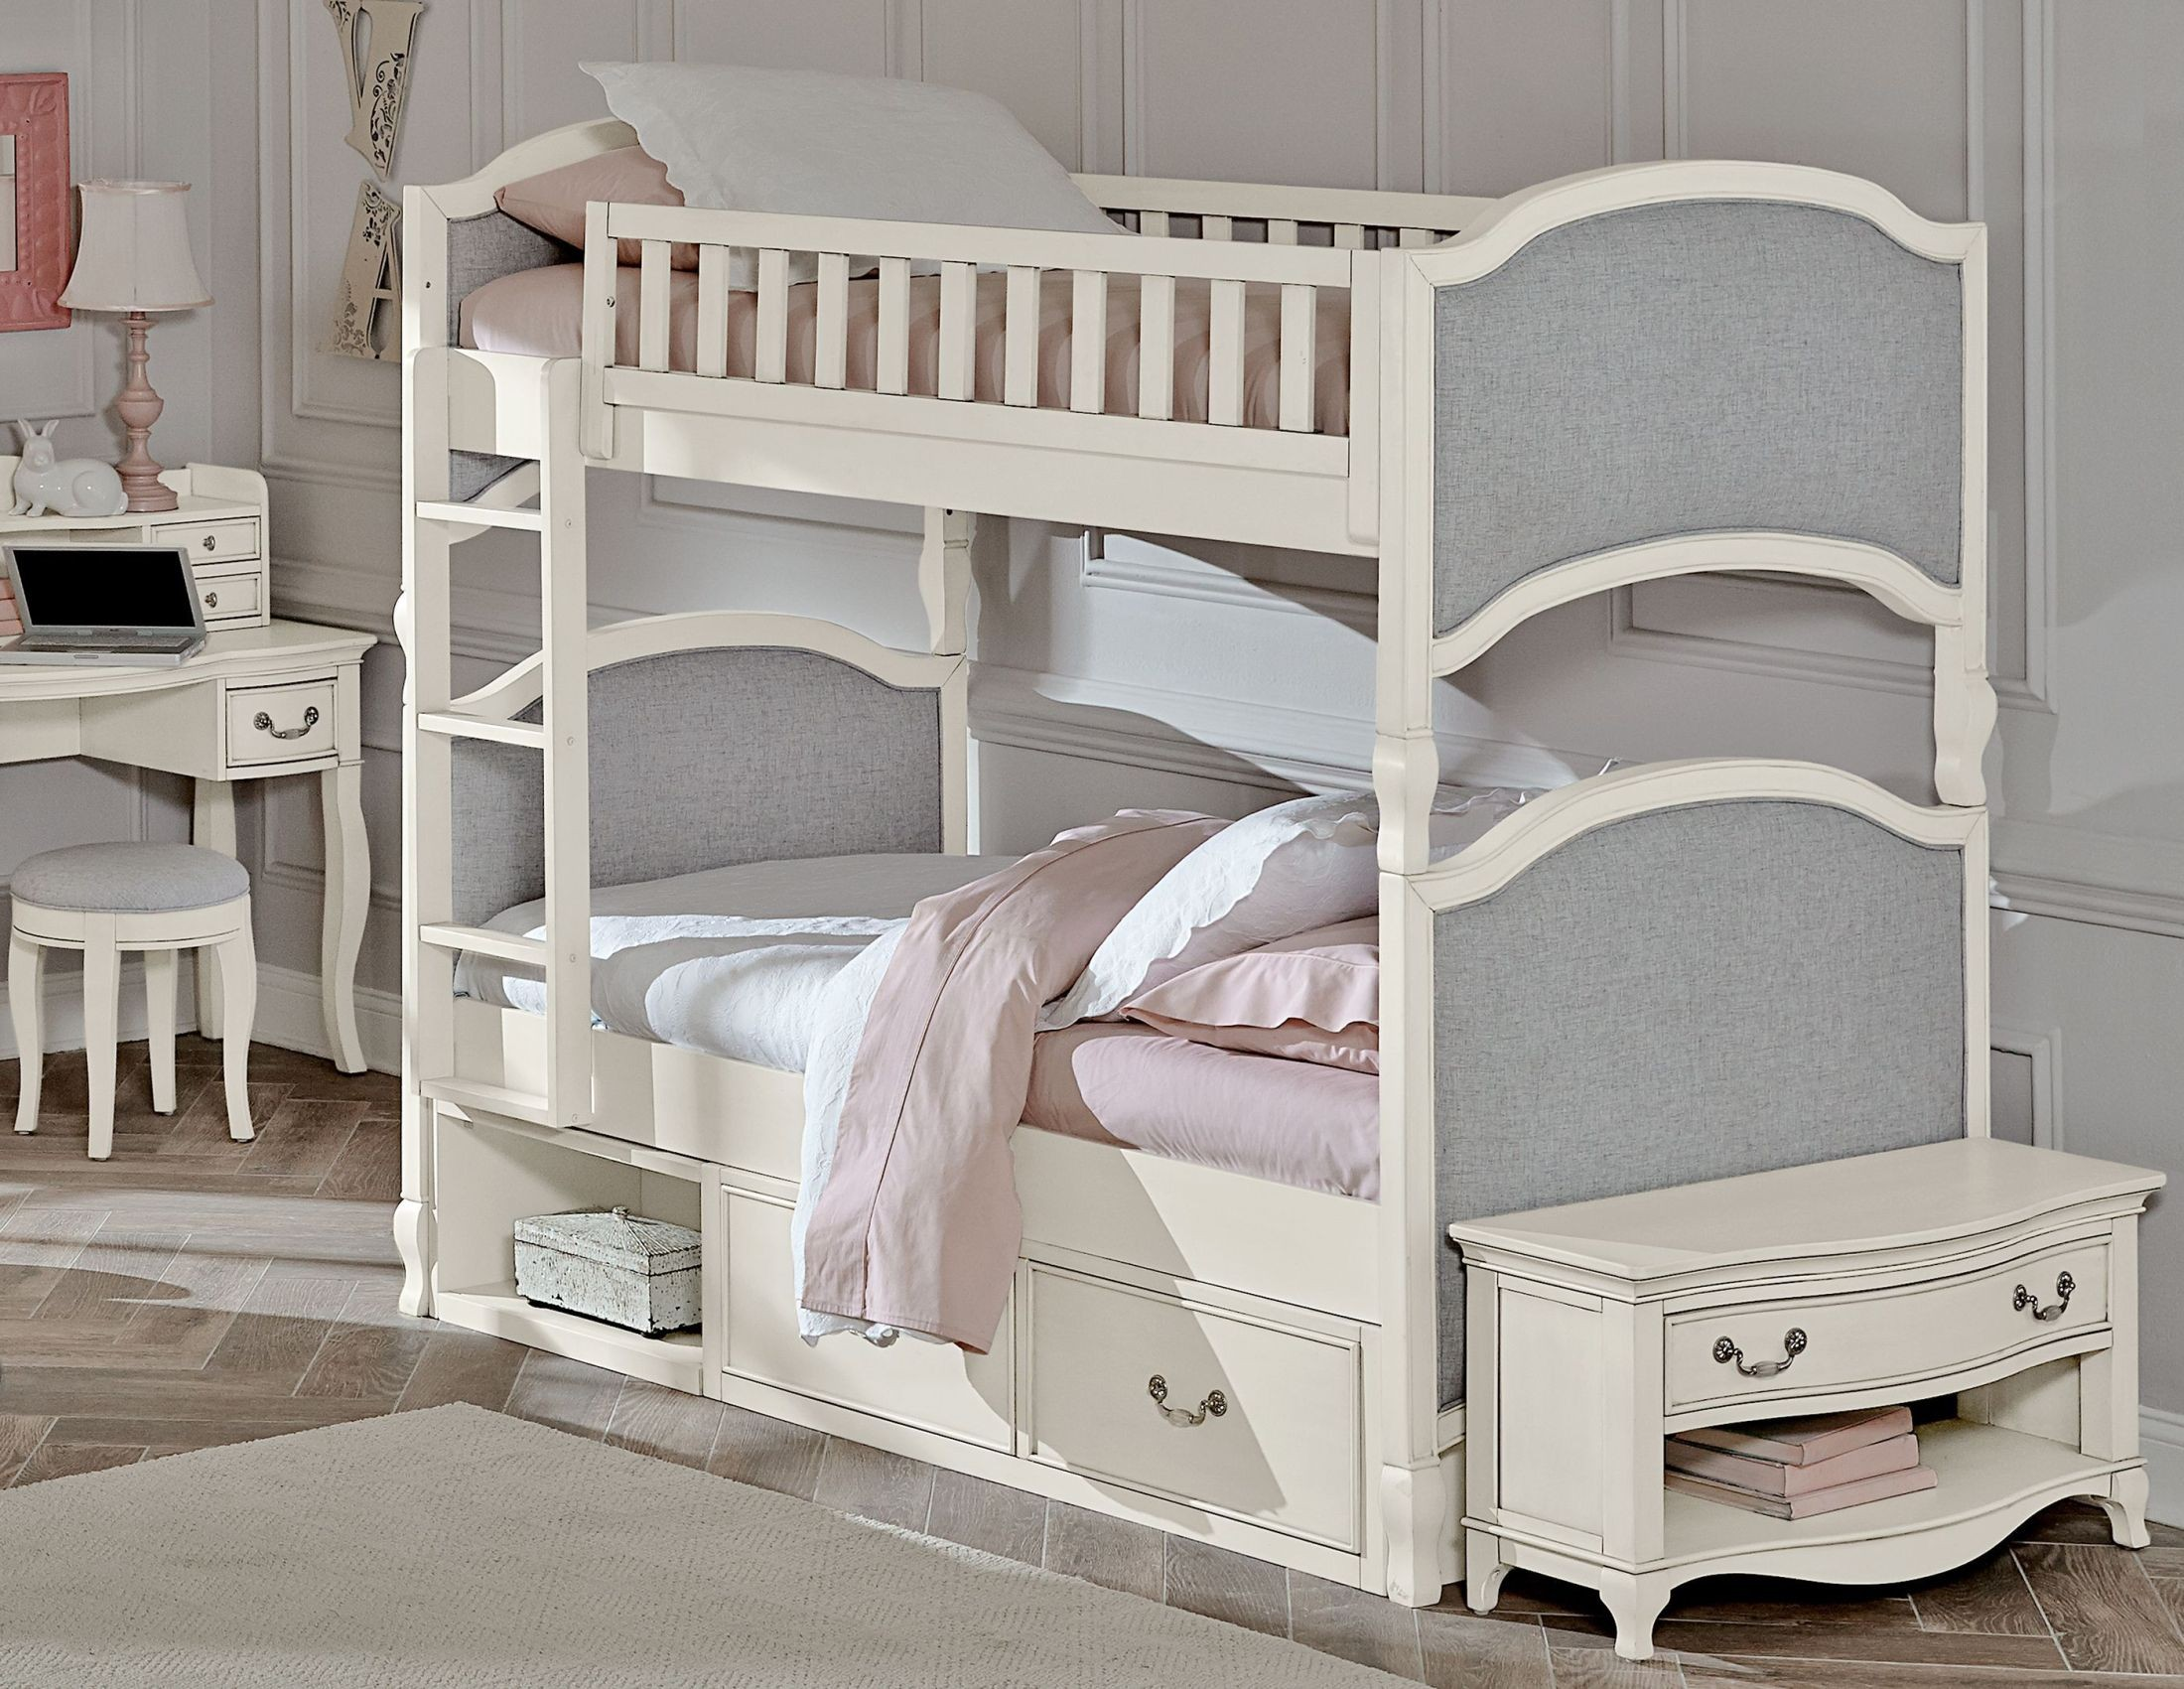 kensington antique white victoria twin over twin bunk bed with storage from ne kids coleman. Black Bedroom Furniture Sets. Home Design Ideas